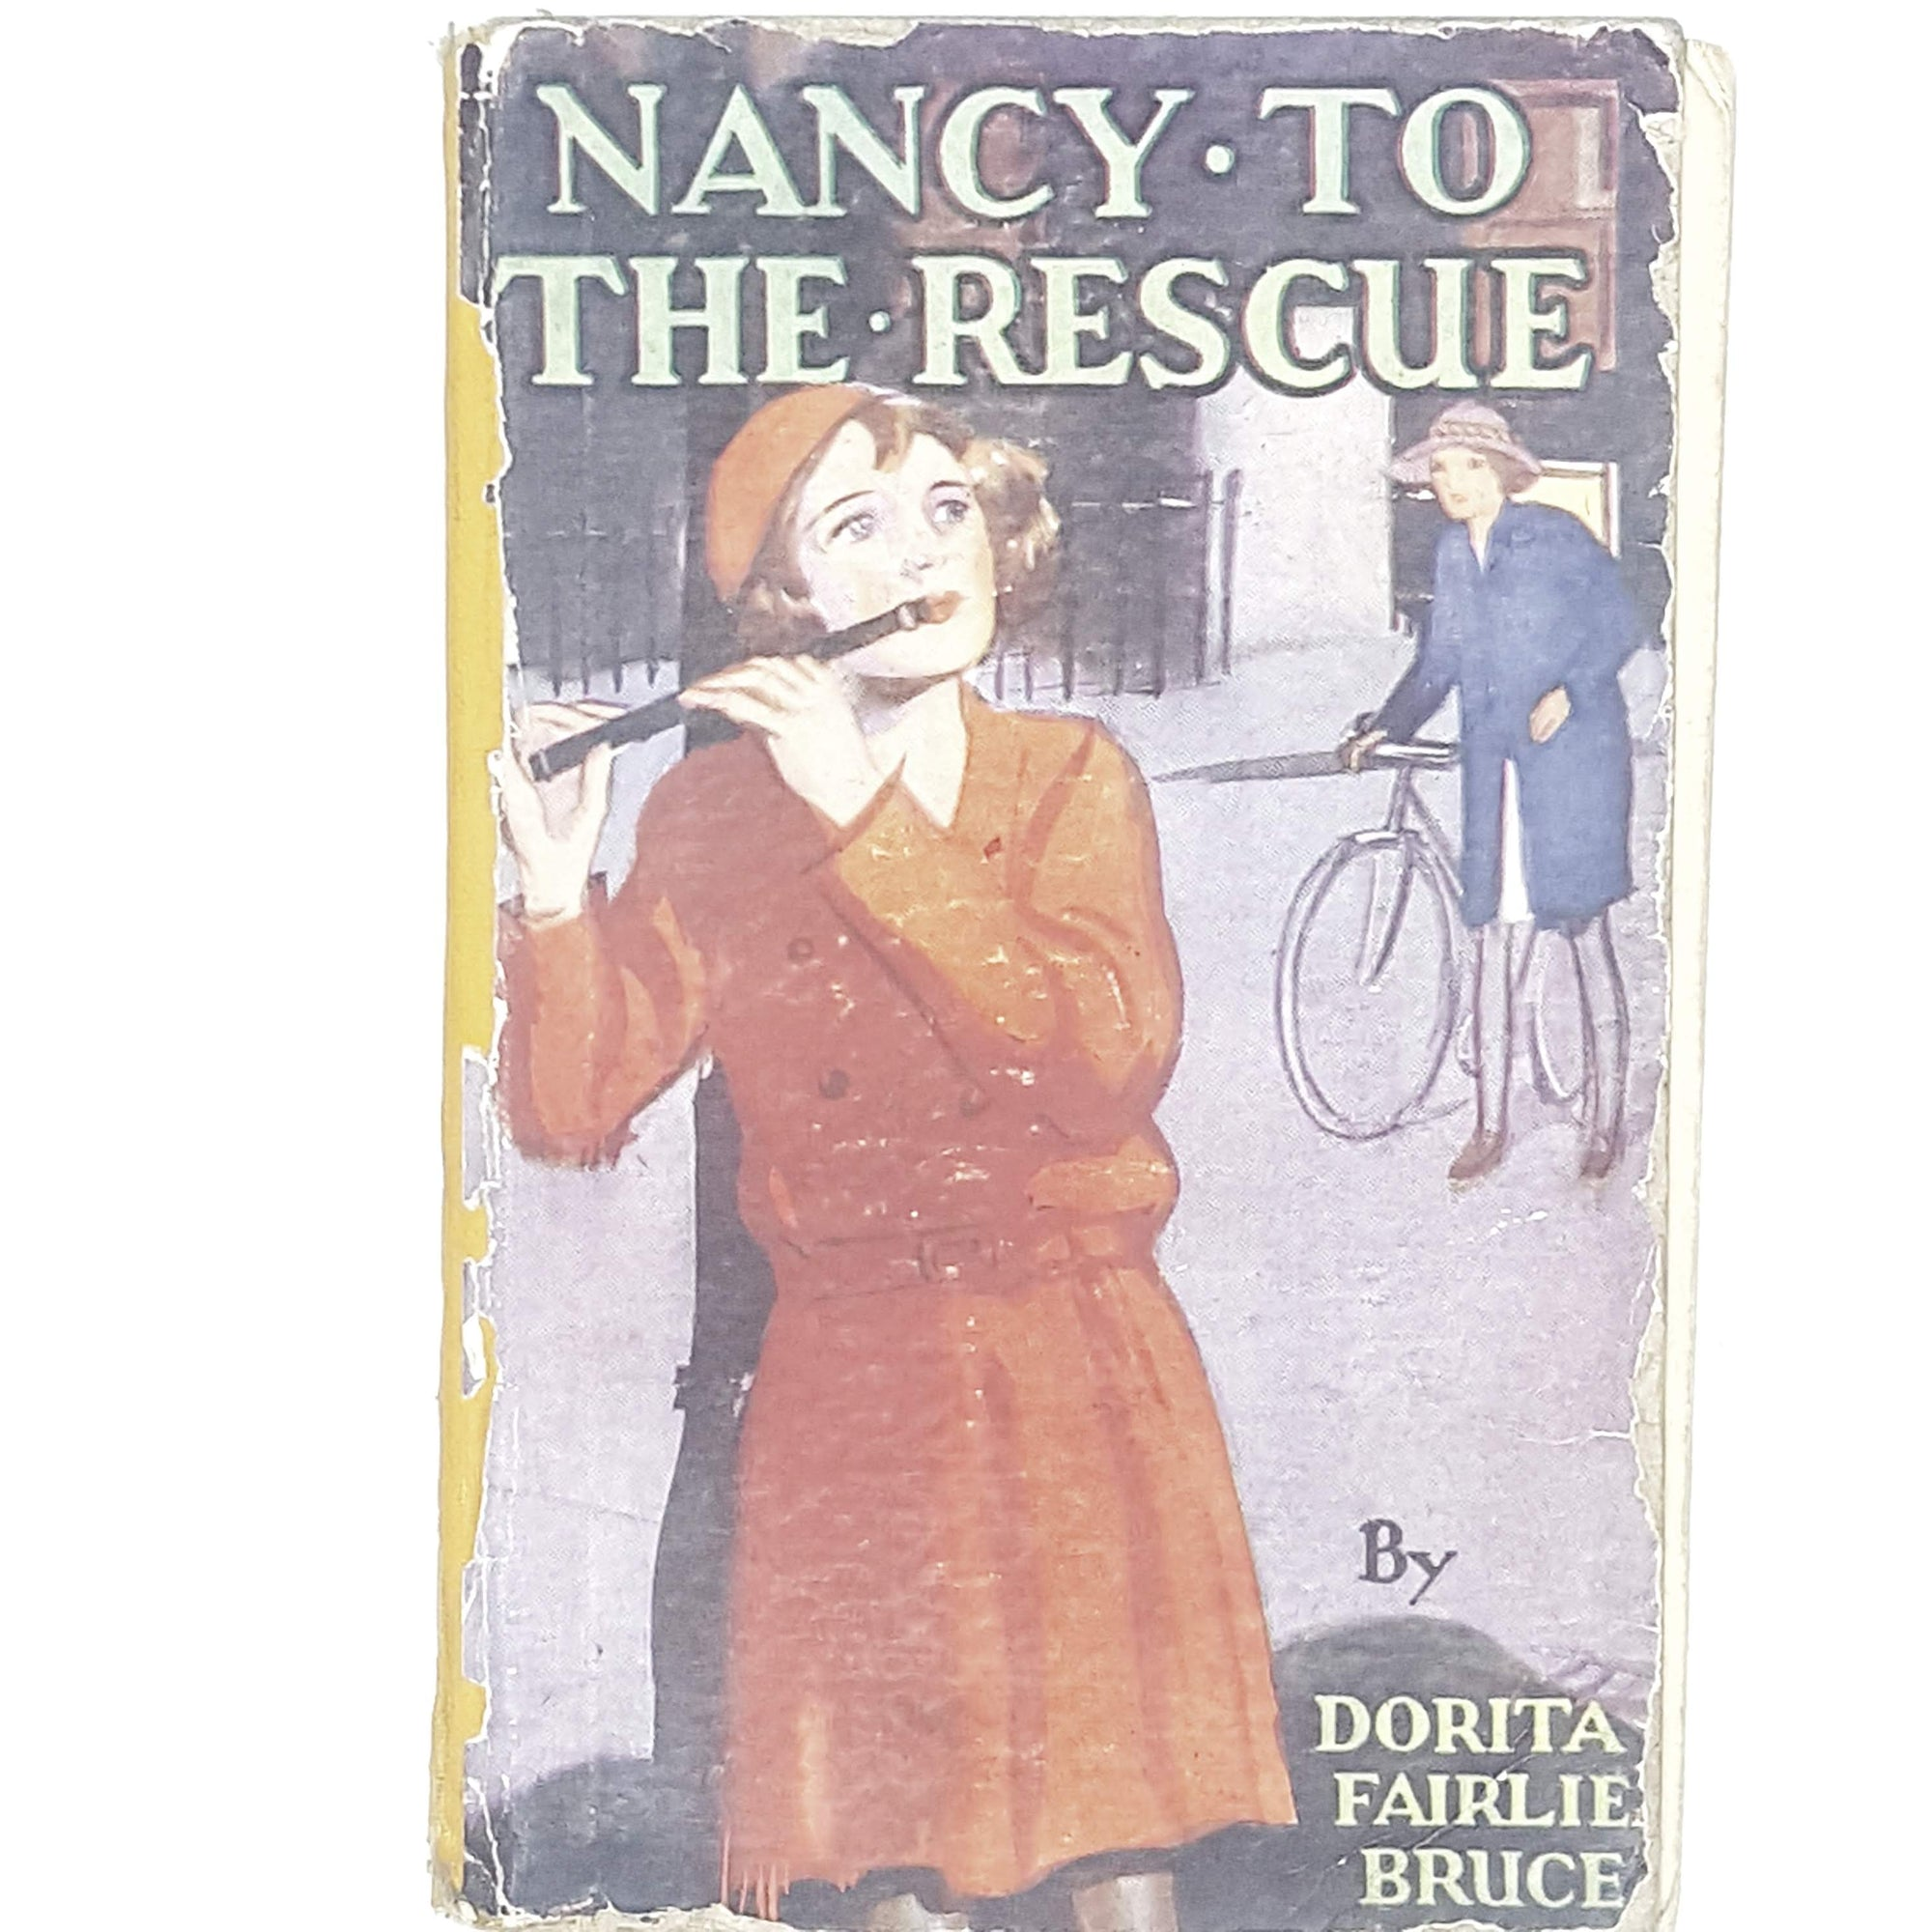 Vintage Children's: Nancy to the Rescue by Dorita Fairlie Bruce c1935